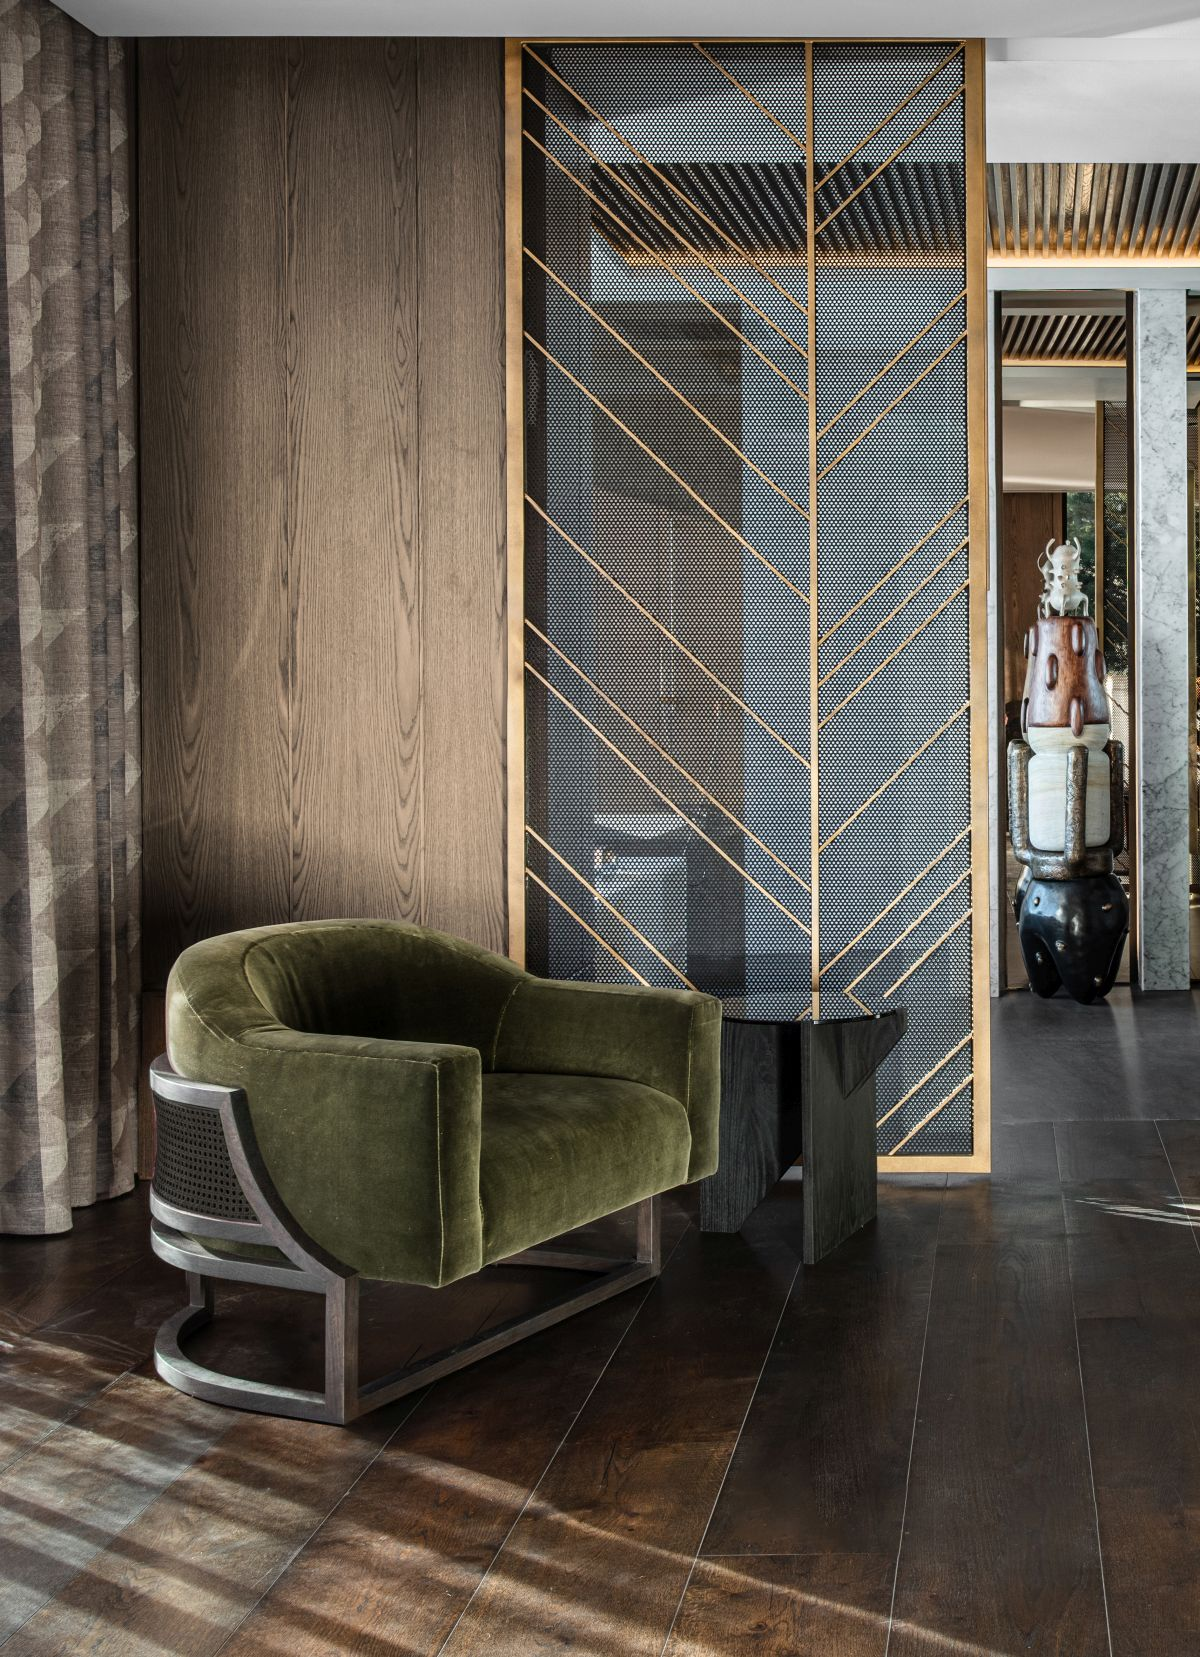 Dark and faded shades of green are also featured in other forms throughout the interior